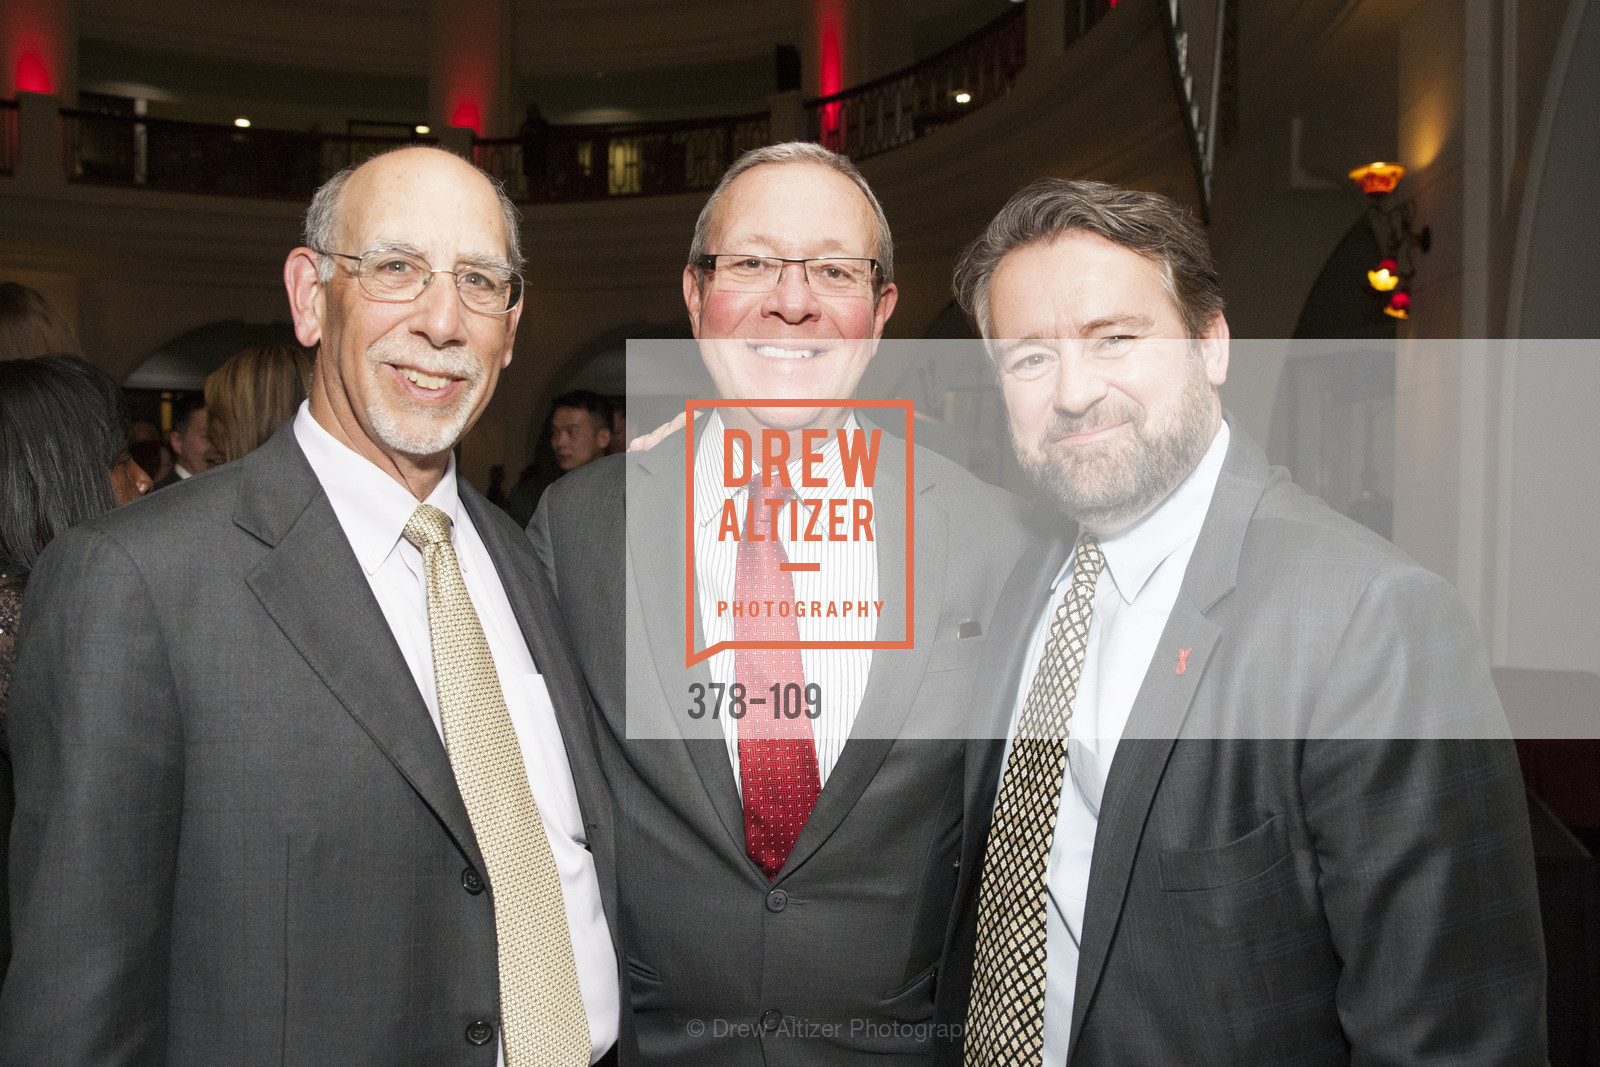 Eric Roberts, David McMurry, Ben Plumley, PANGAEA GLOBAL HEALTH Leadership Dinner at Rotunda in Oakland, The Rotunda. Oakland, May 11th, 2015,Drew Altizer, Drew Altizer Photography, full-service agency, private events, San Francisco photographer, photographer california